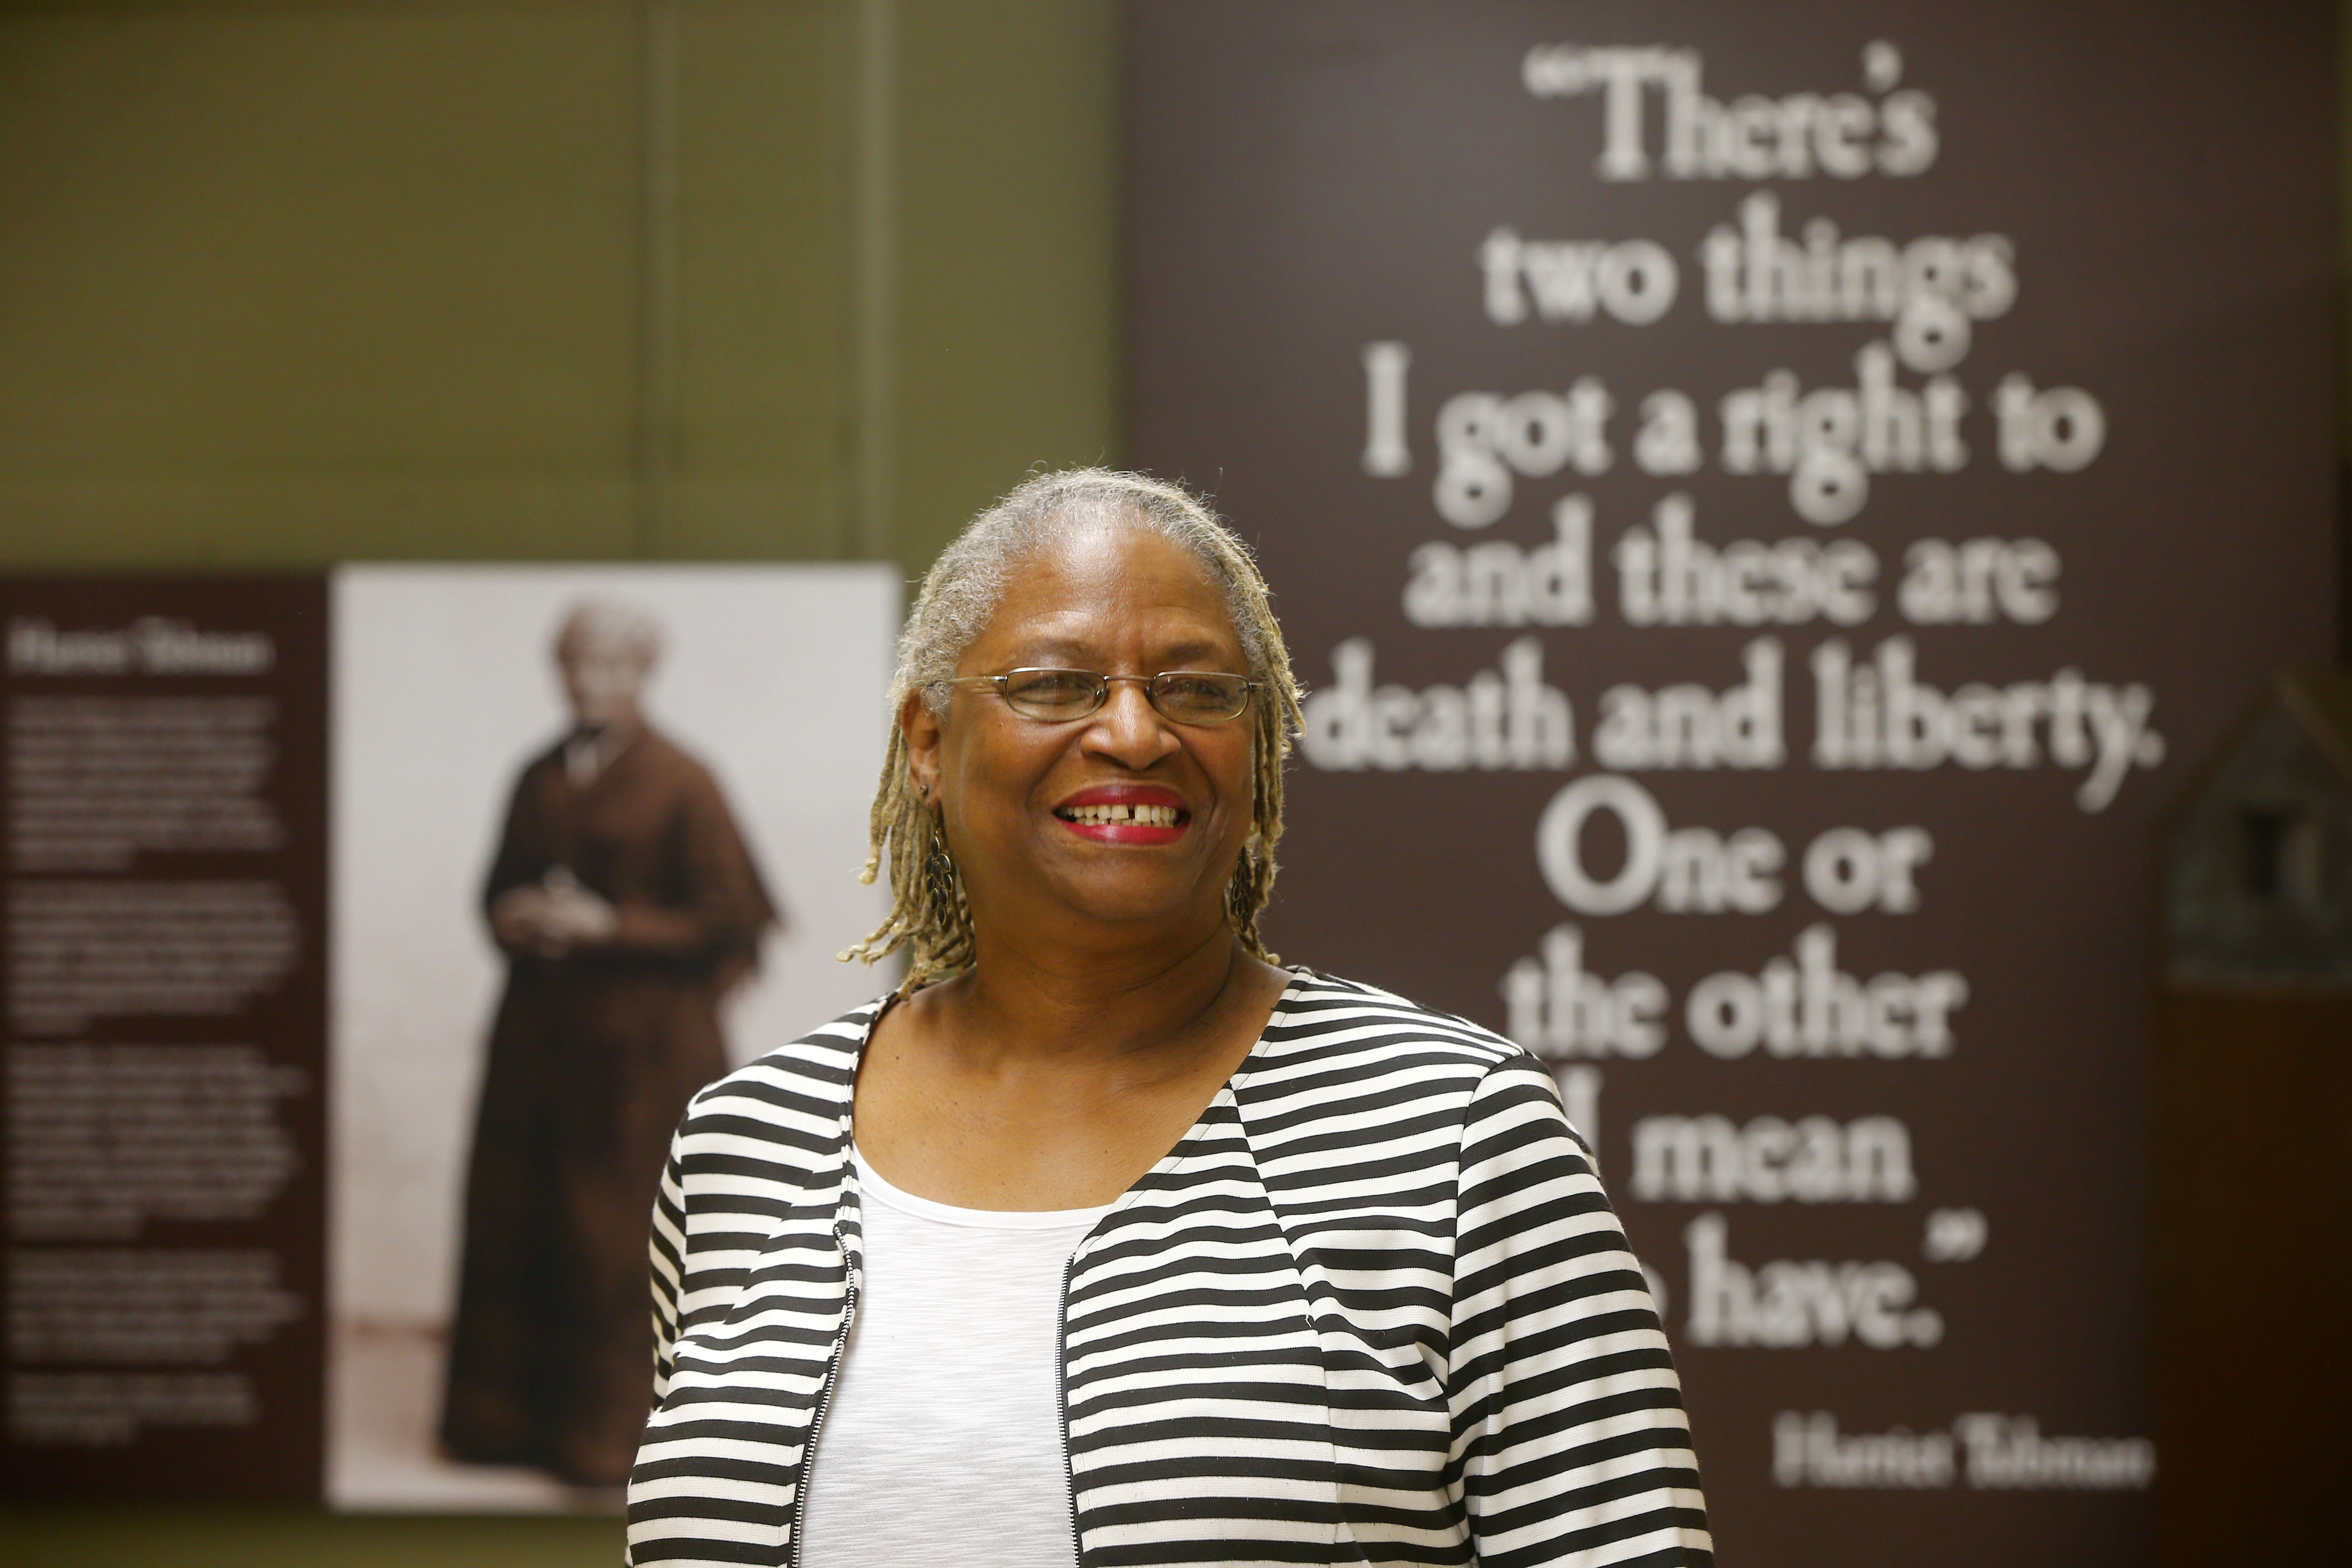 Denise Easterling's dream for more than 20 years is close to reality with the Underground Railroad Heritage Museum set to open next year in Niagara Falls.